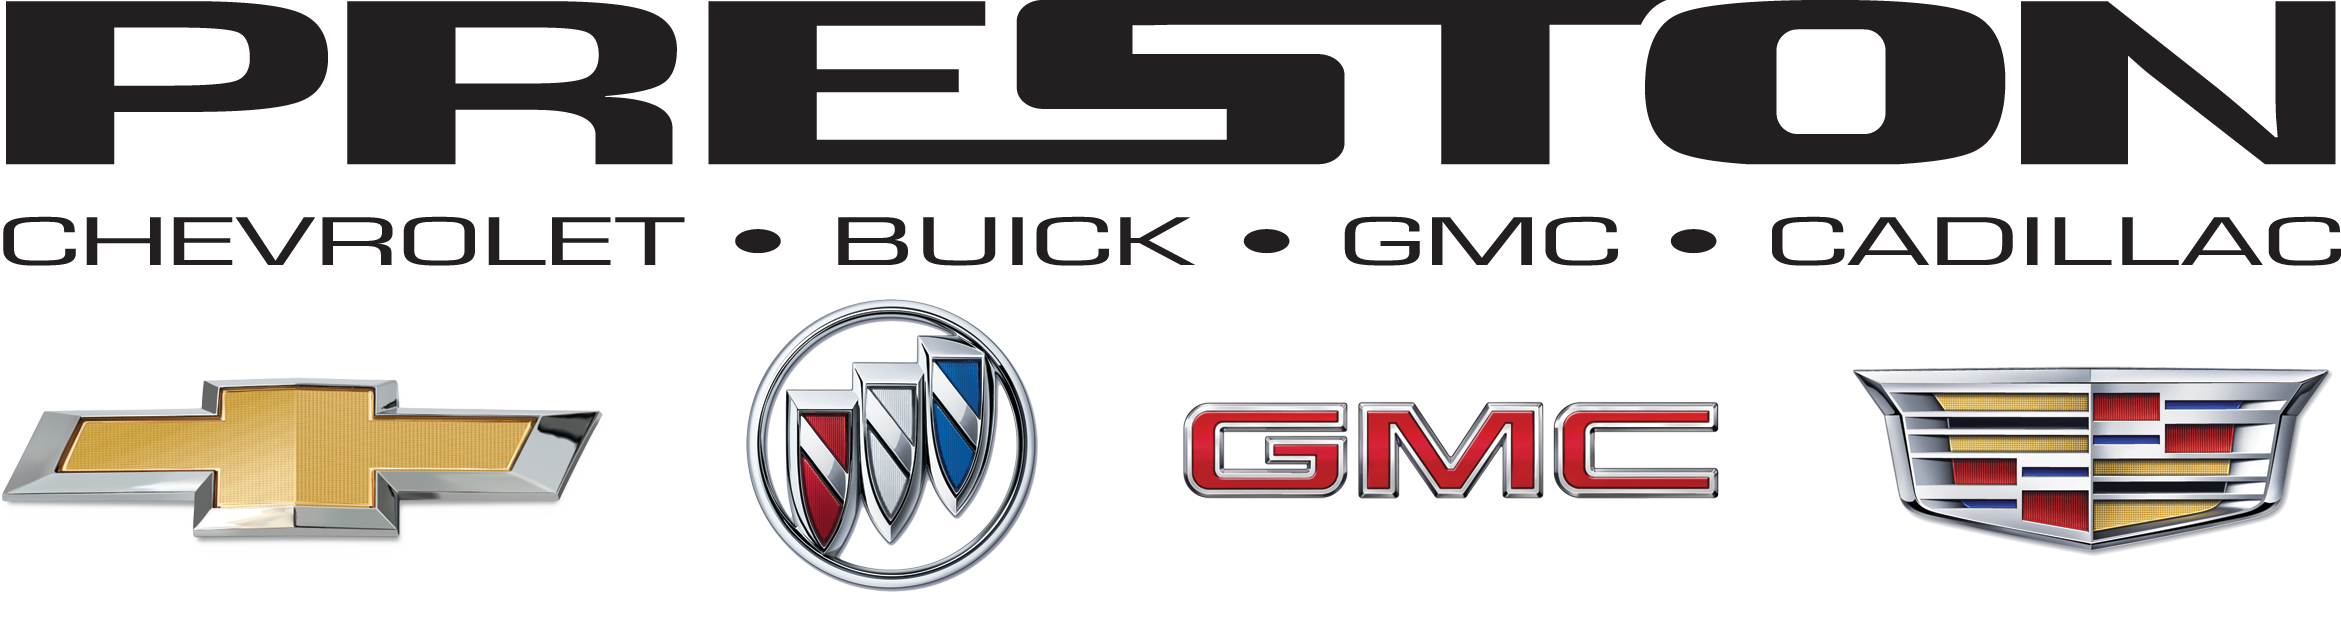 Preston Logo 2019 w GM Brand Badges PNG